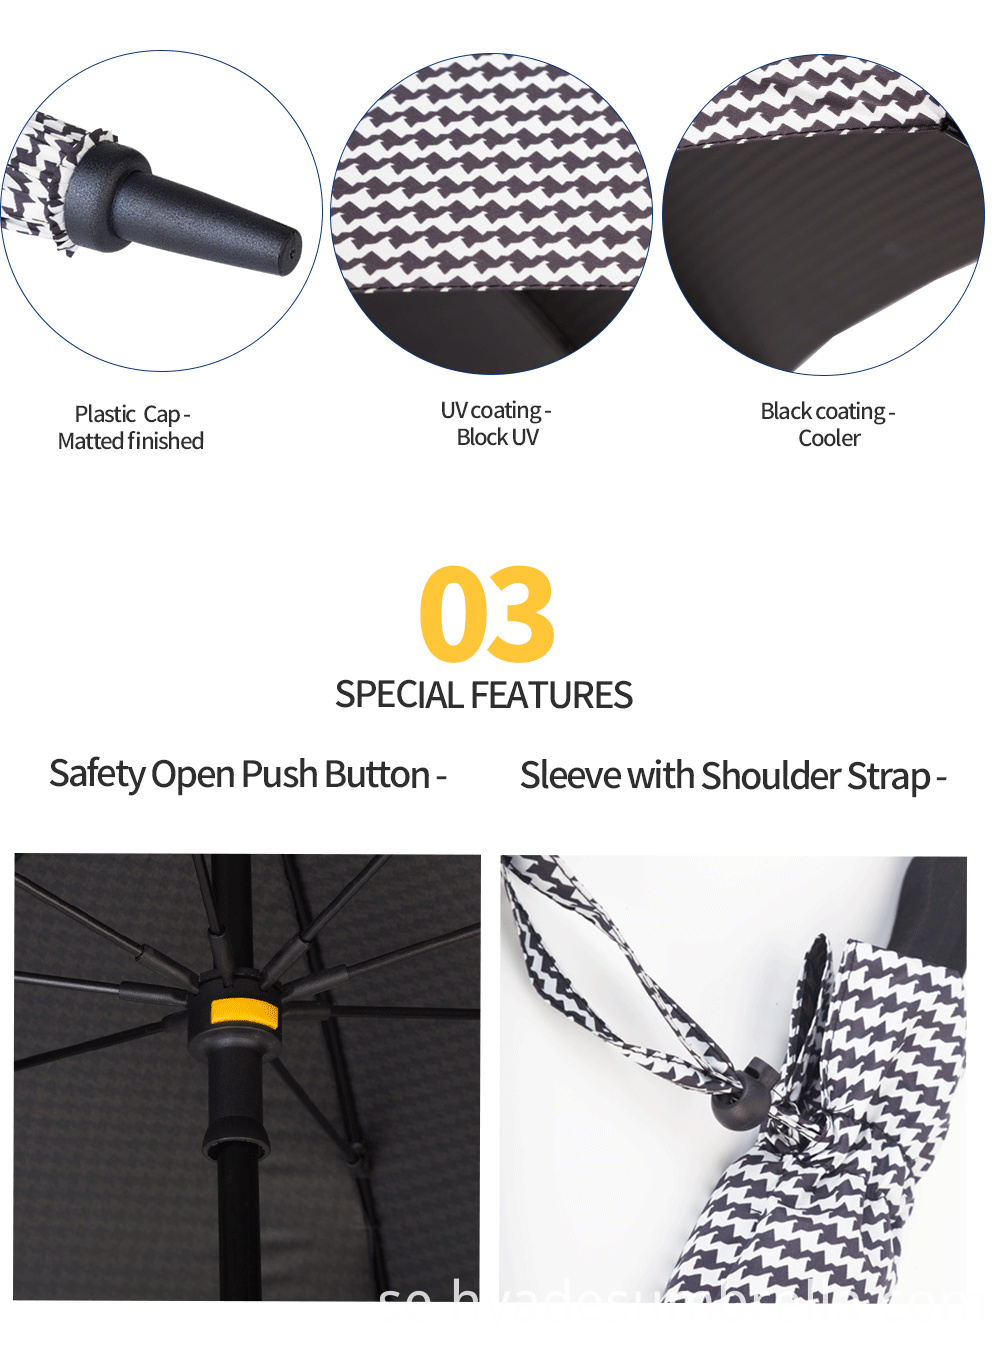 Product-Descrption-page---Ultra-Light-Golf-Umbrella_09